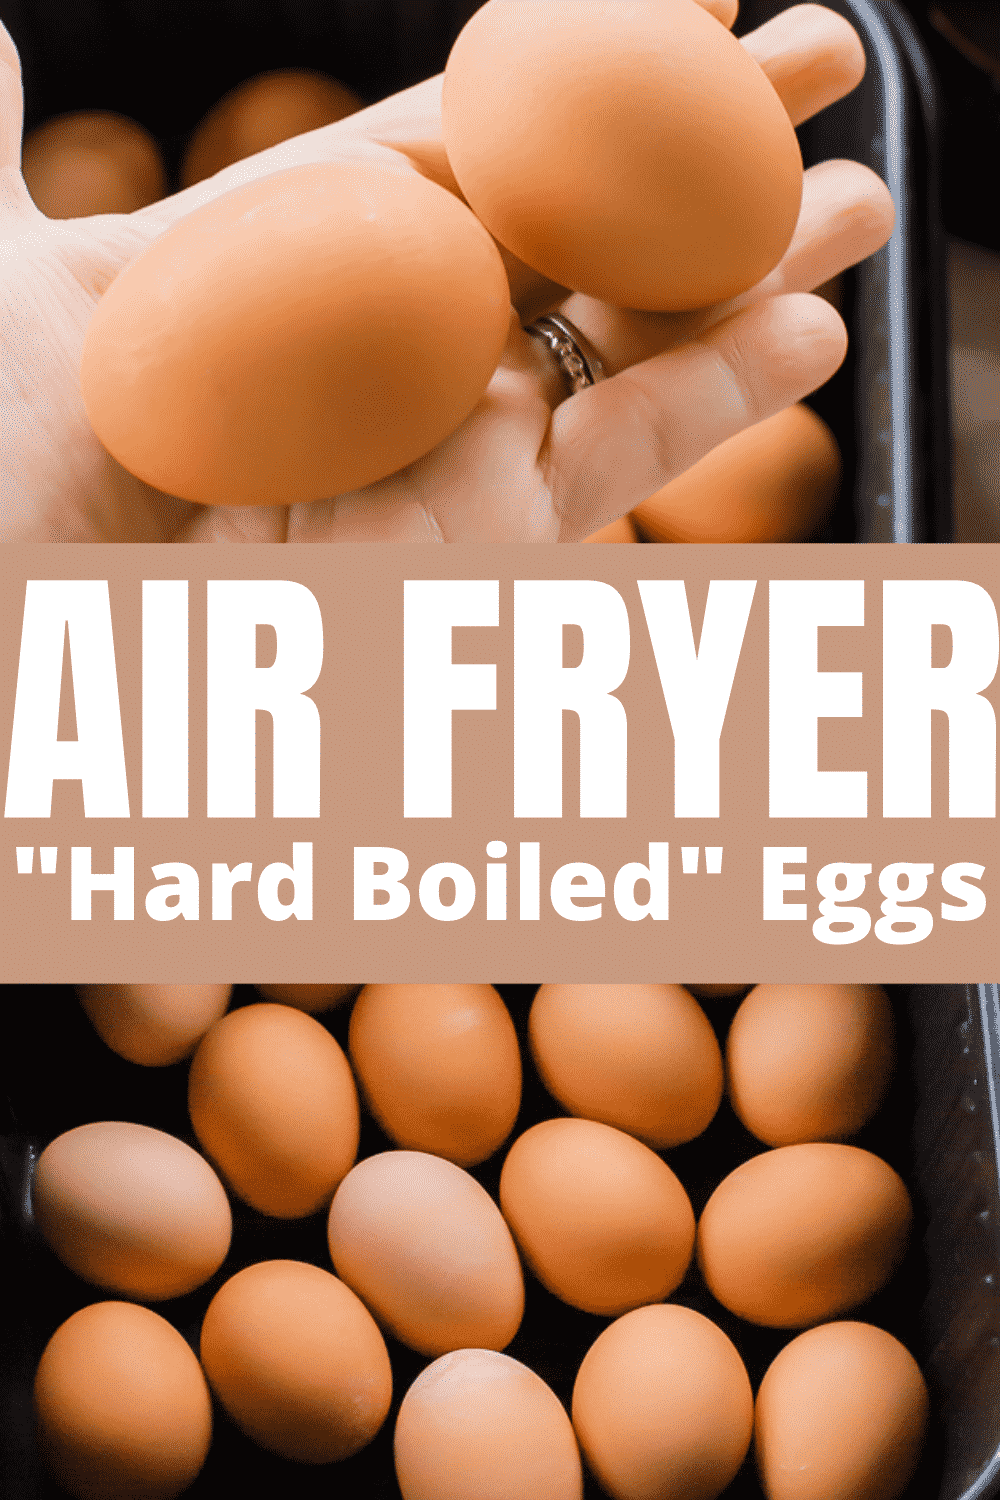 Did you know that you could make hard boiled eggs in the air fryer? Learn how simple it is to make air fryer hard boiled eggs that come out perfectly cooked every time.  via @vegetarianmamma